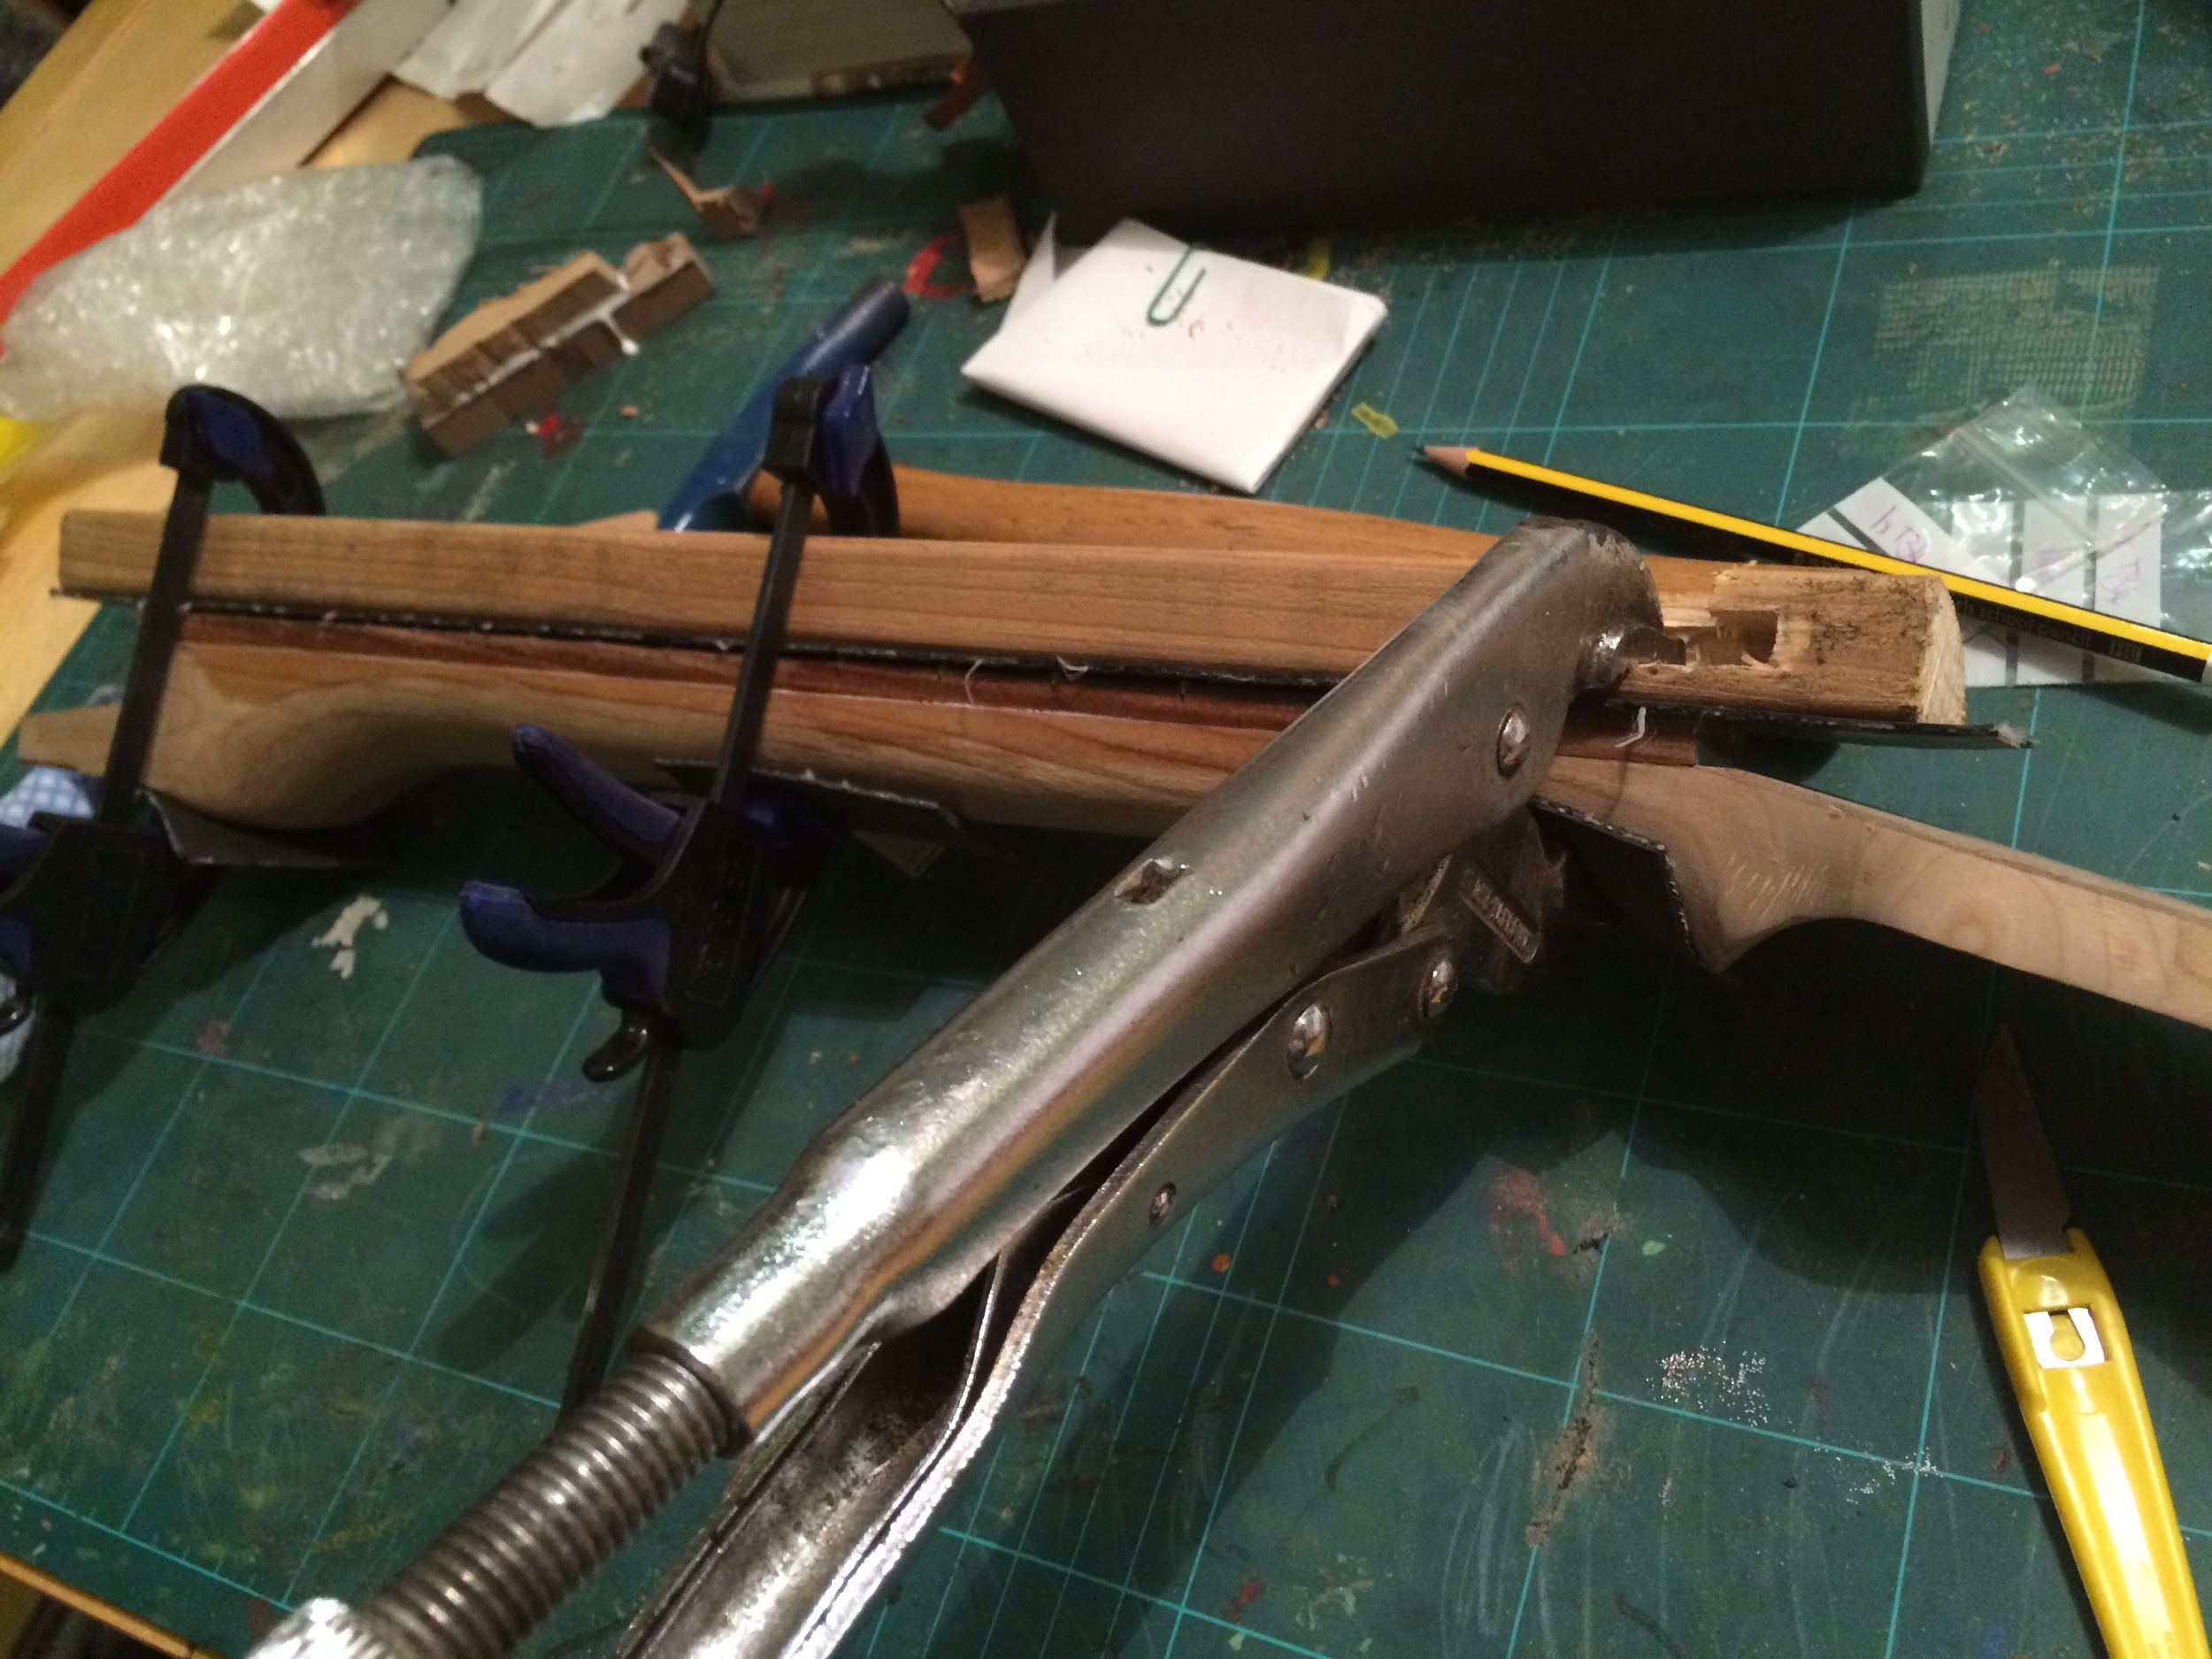 Glueing the fretboard to the neck